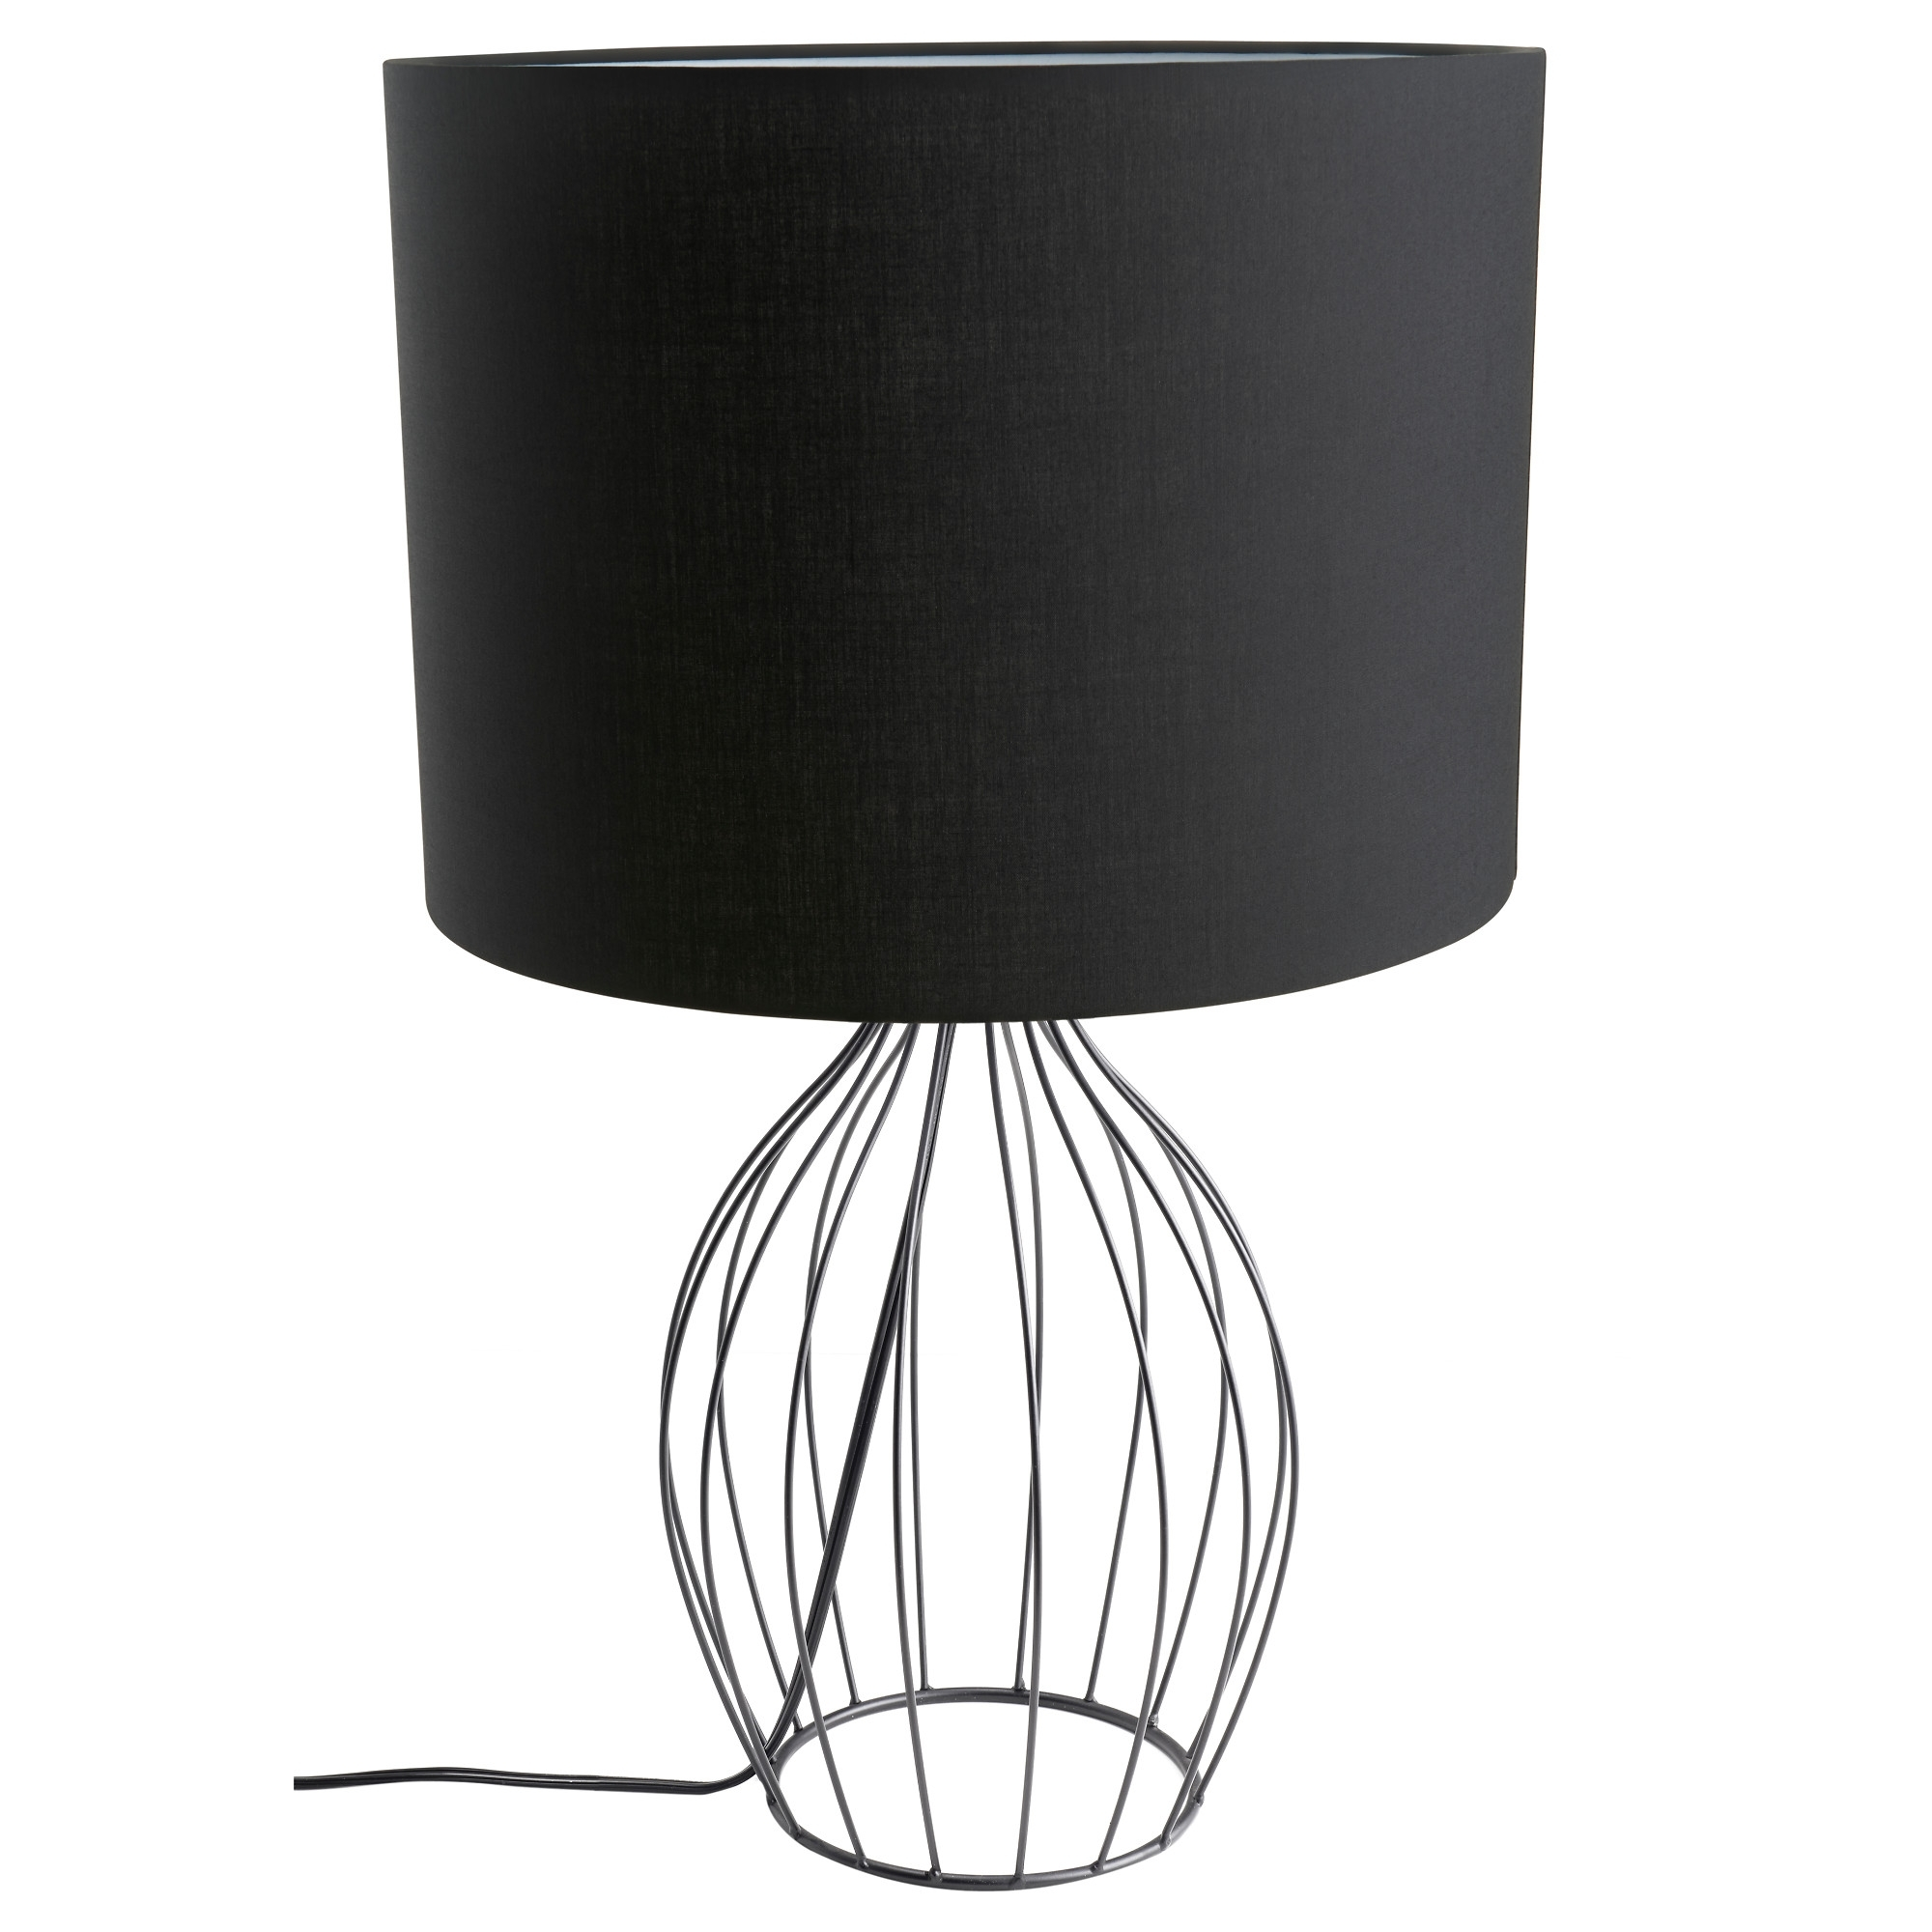 Black Living Room Table Lamps For Well Liked Top 68 Supreme Nightstand Lamps Unique Table Grey Bedside Black (View 2 of 20)